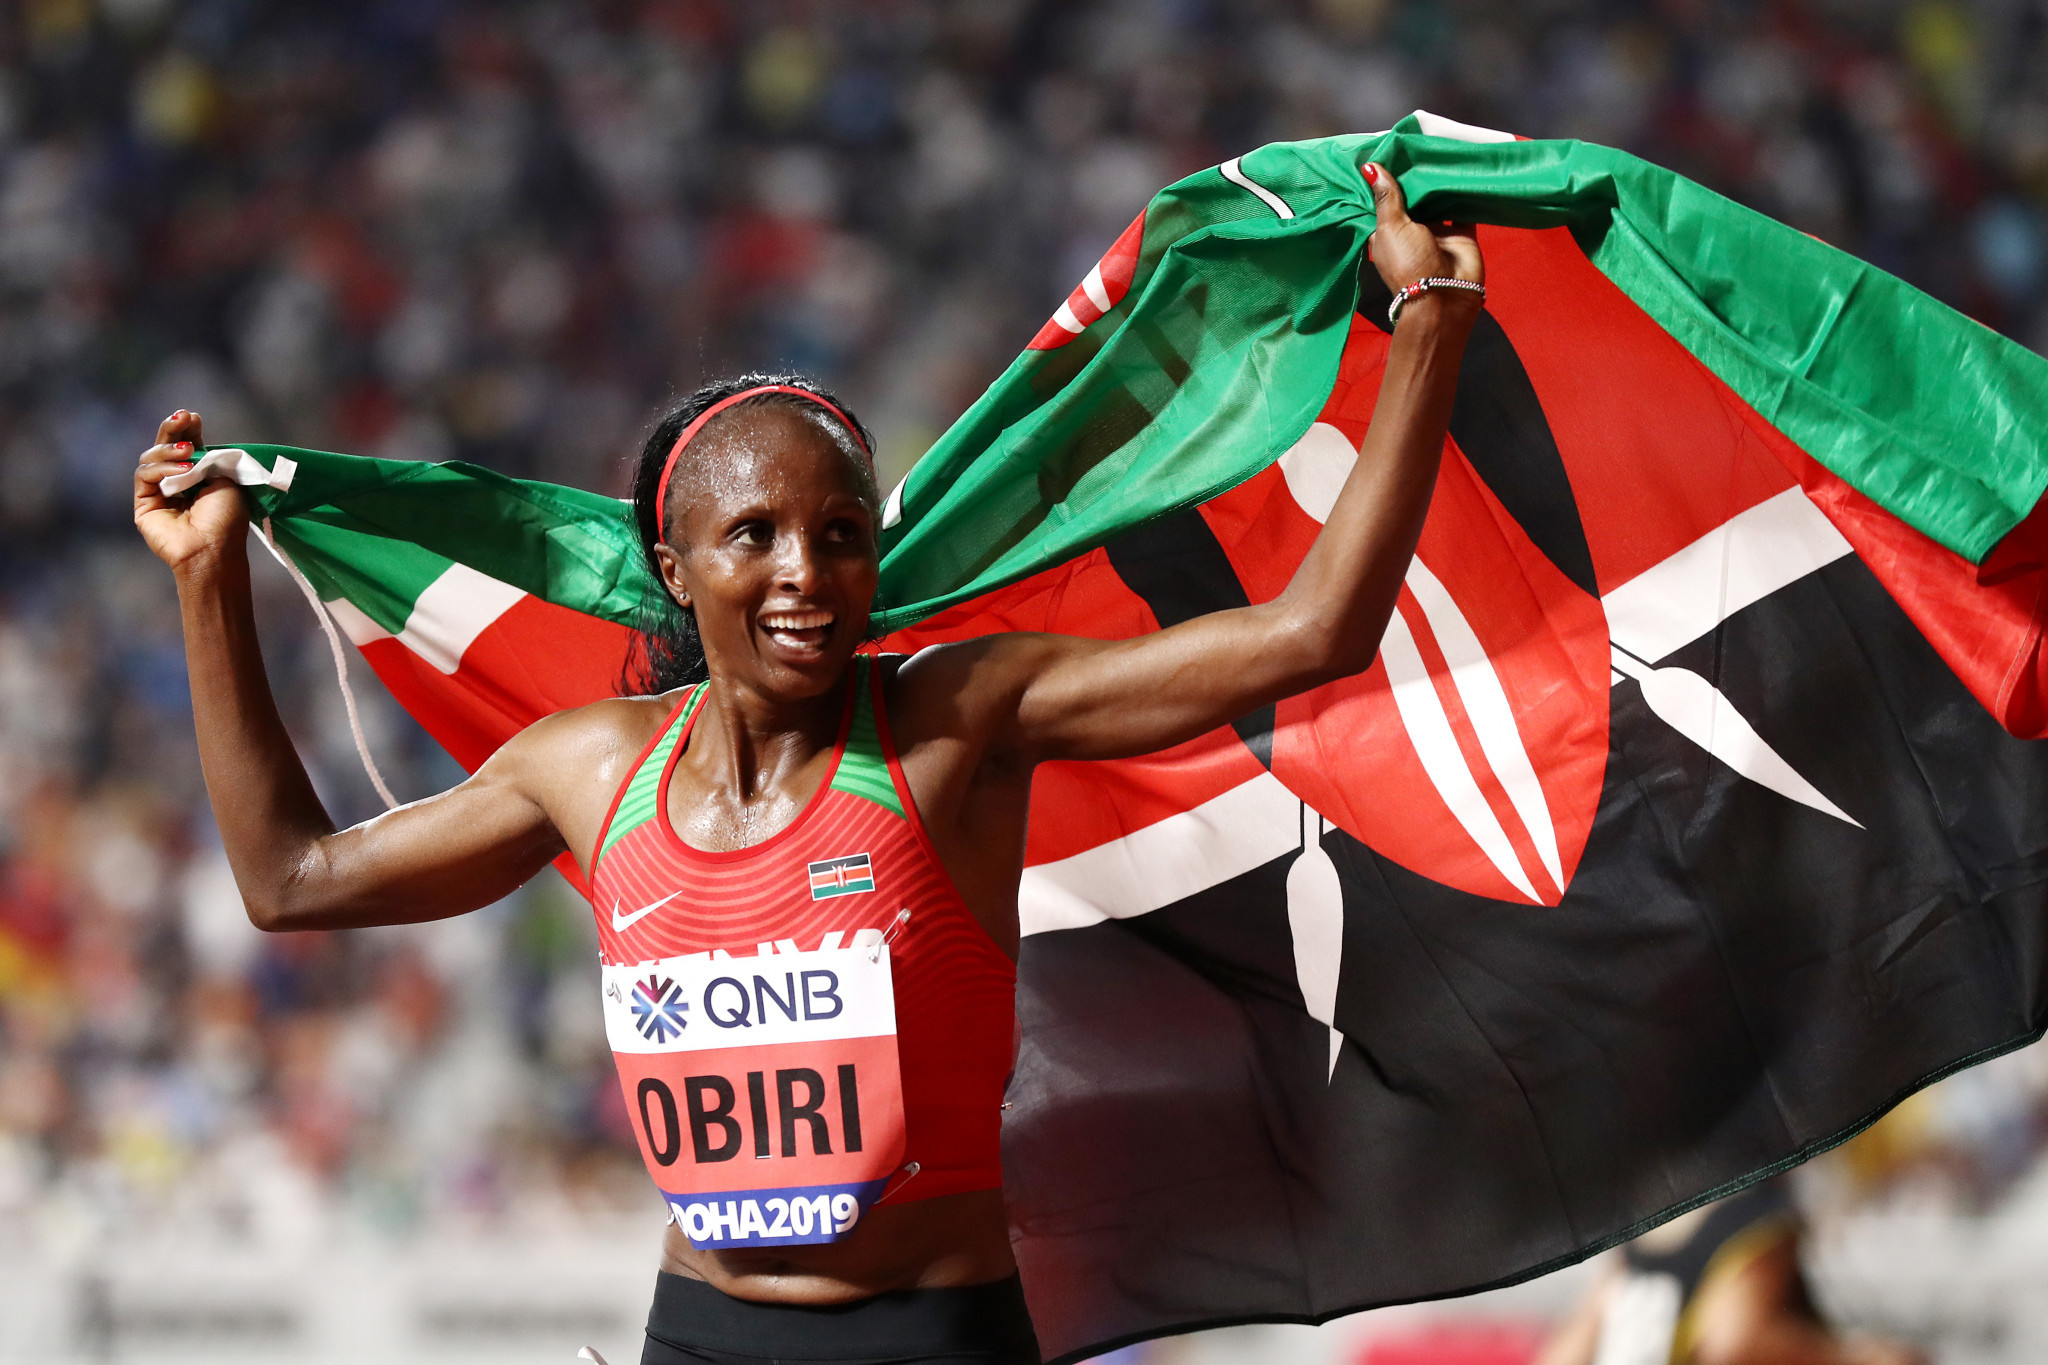 World champions switch events for final 2020 Wanda Diamond League meeting in Doha